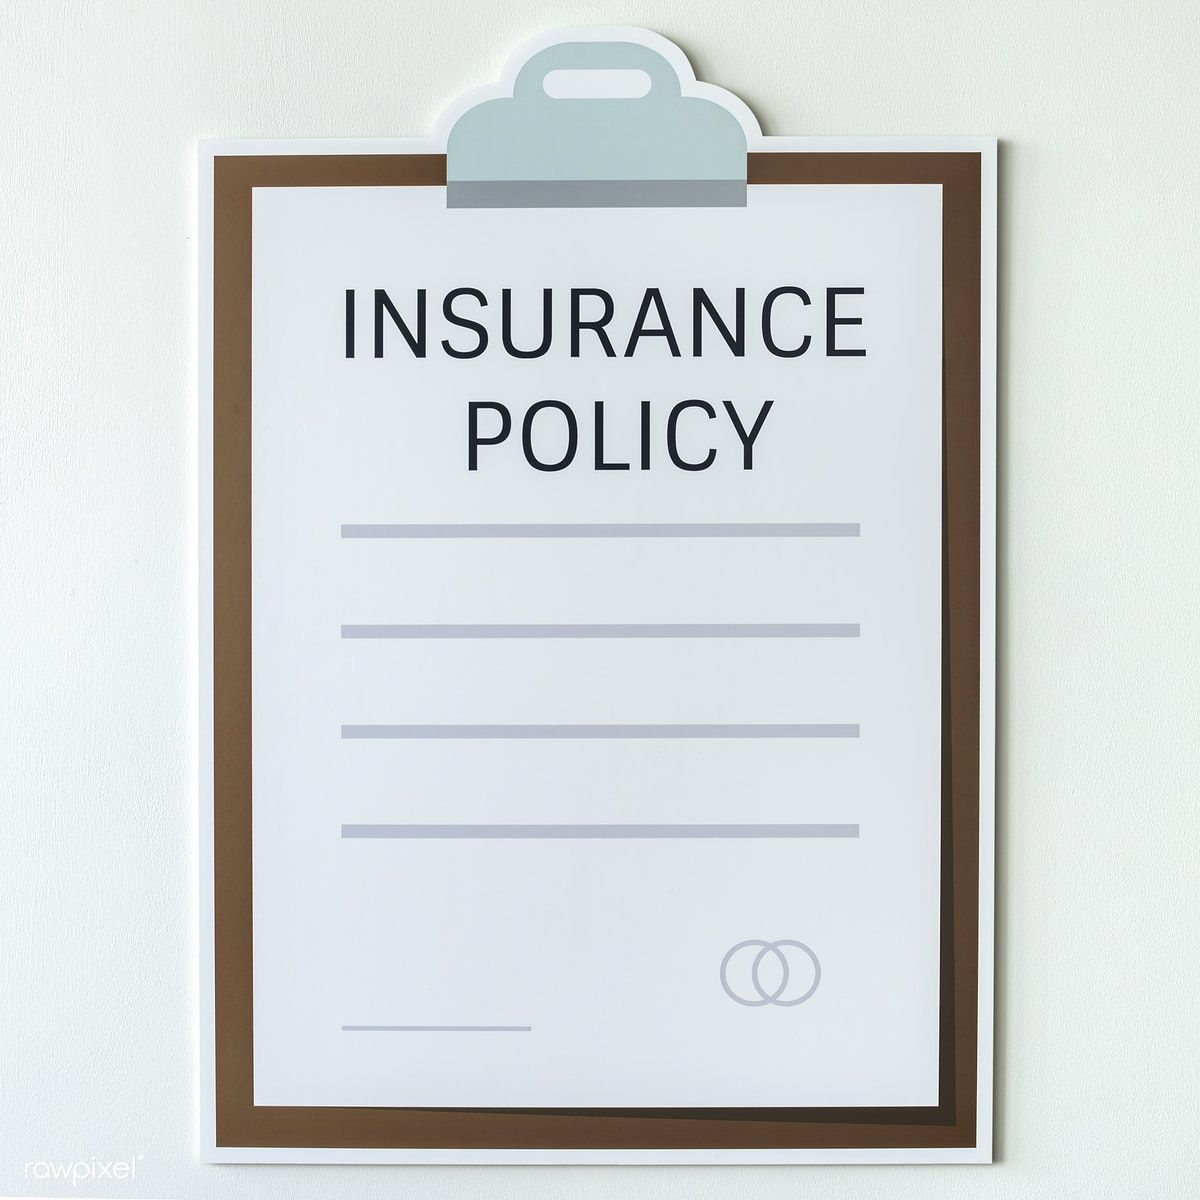 Insurance policy information form icon